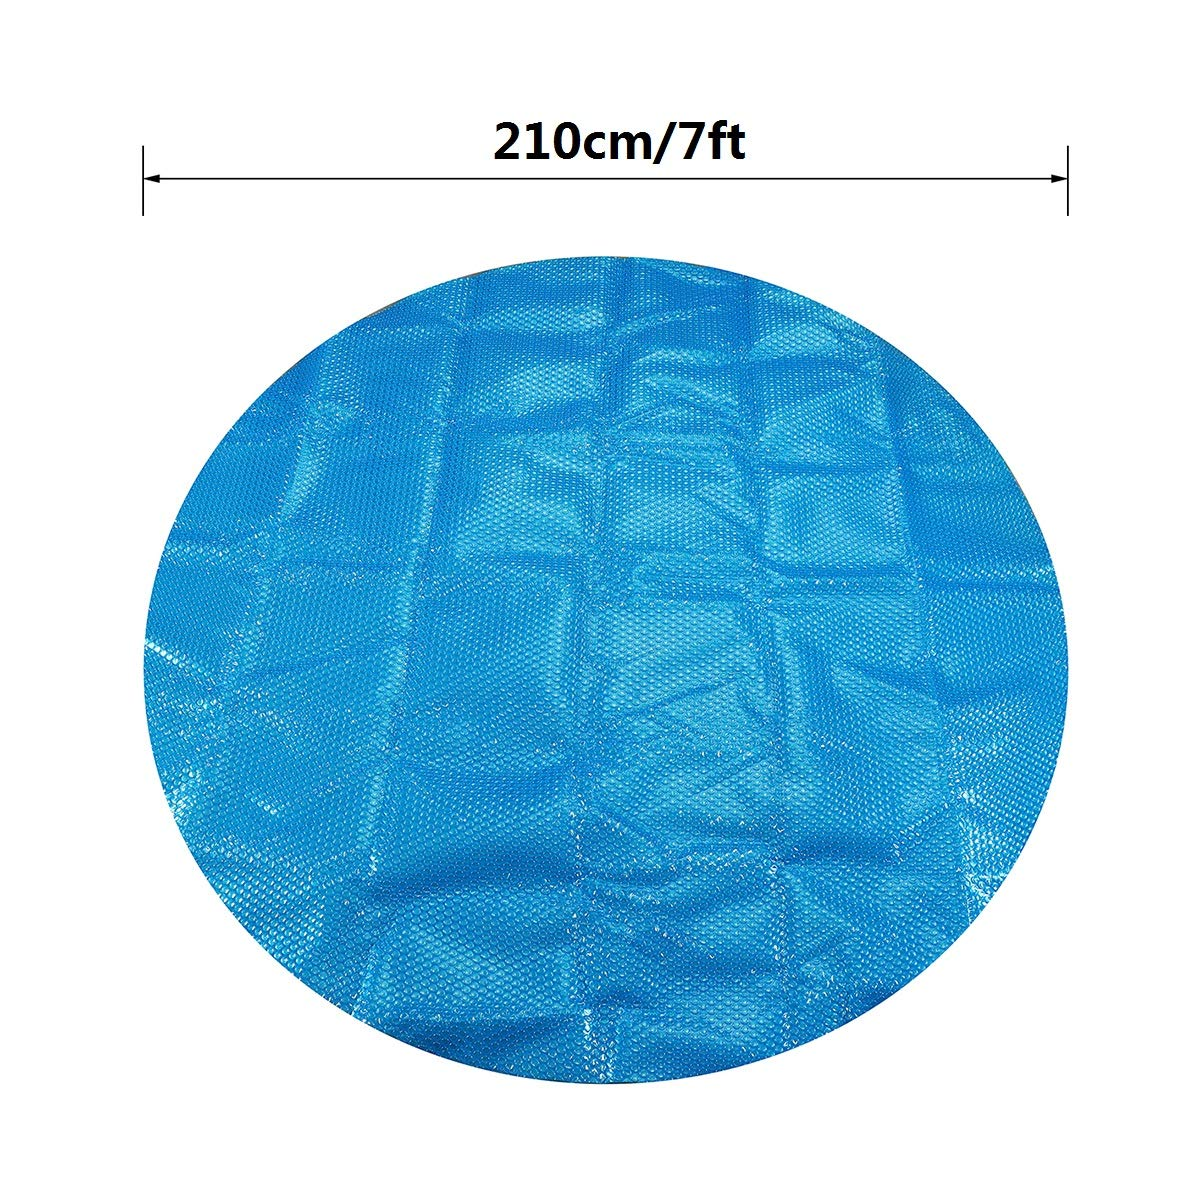 Insulation Energy Saving /& Environmental Protection dDanke 7ft Blue Round Swimming Pool Solar Covers Spa Protective Cover